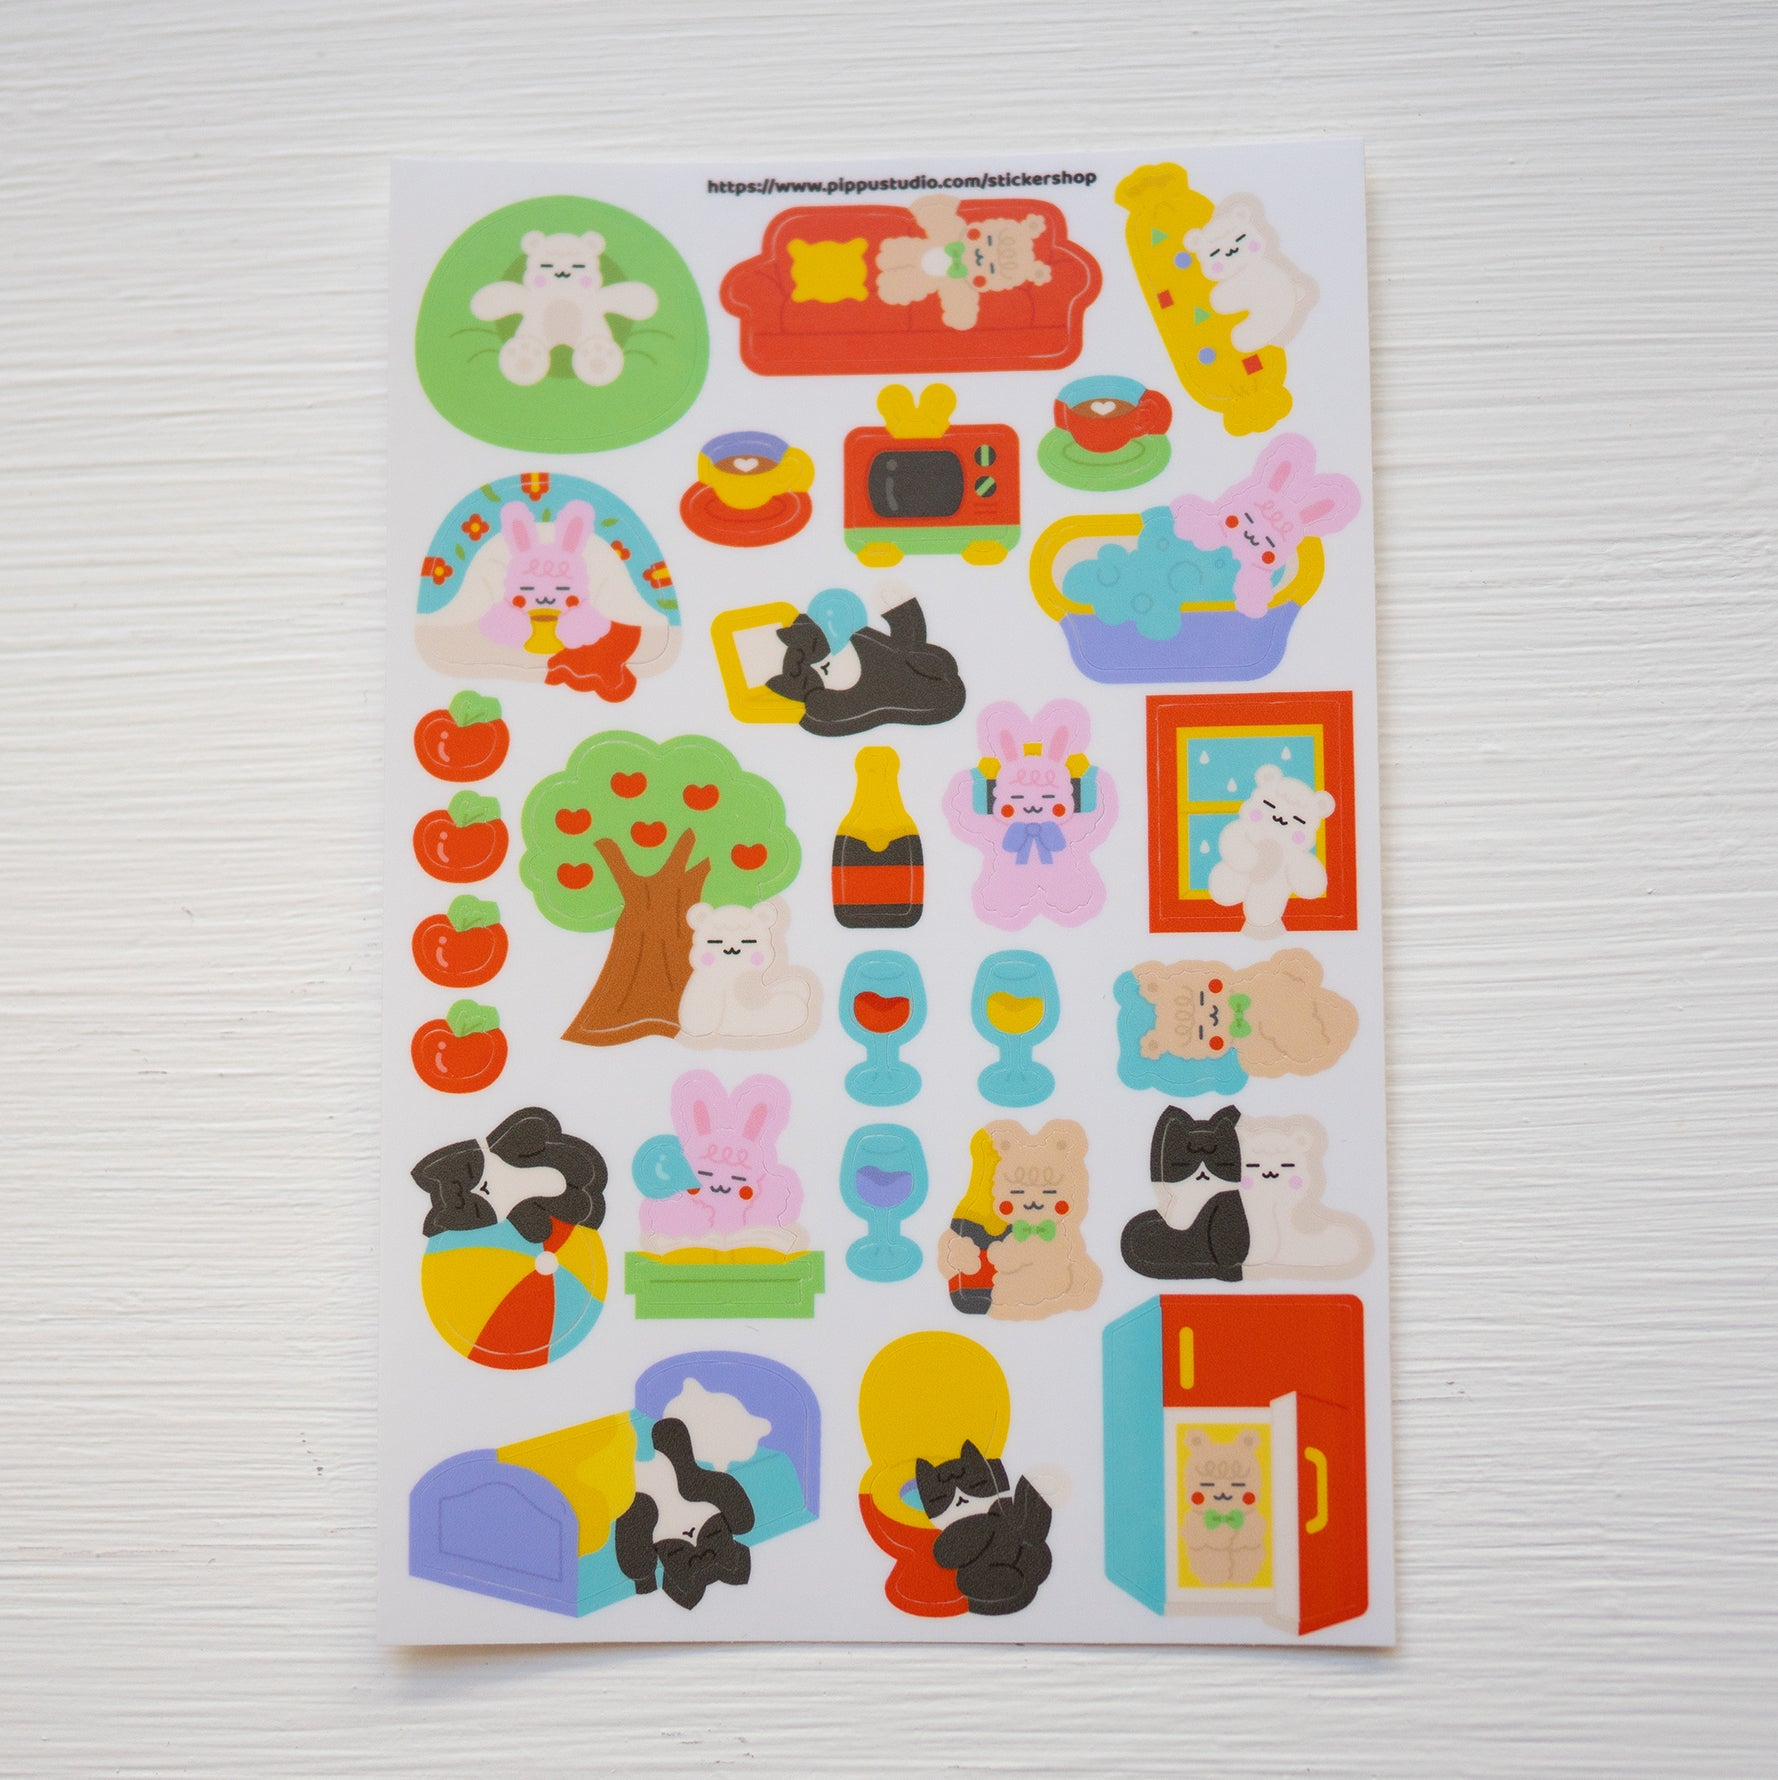 A96-Lazy day sticker sheet